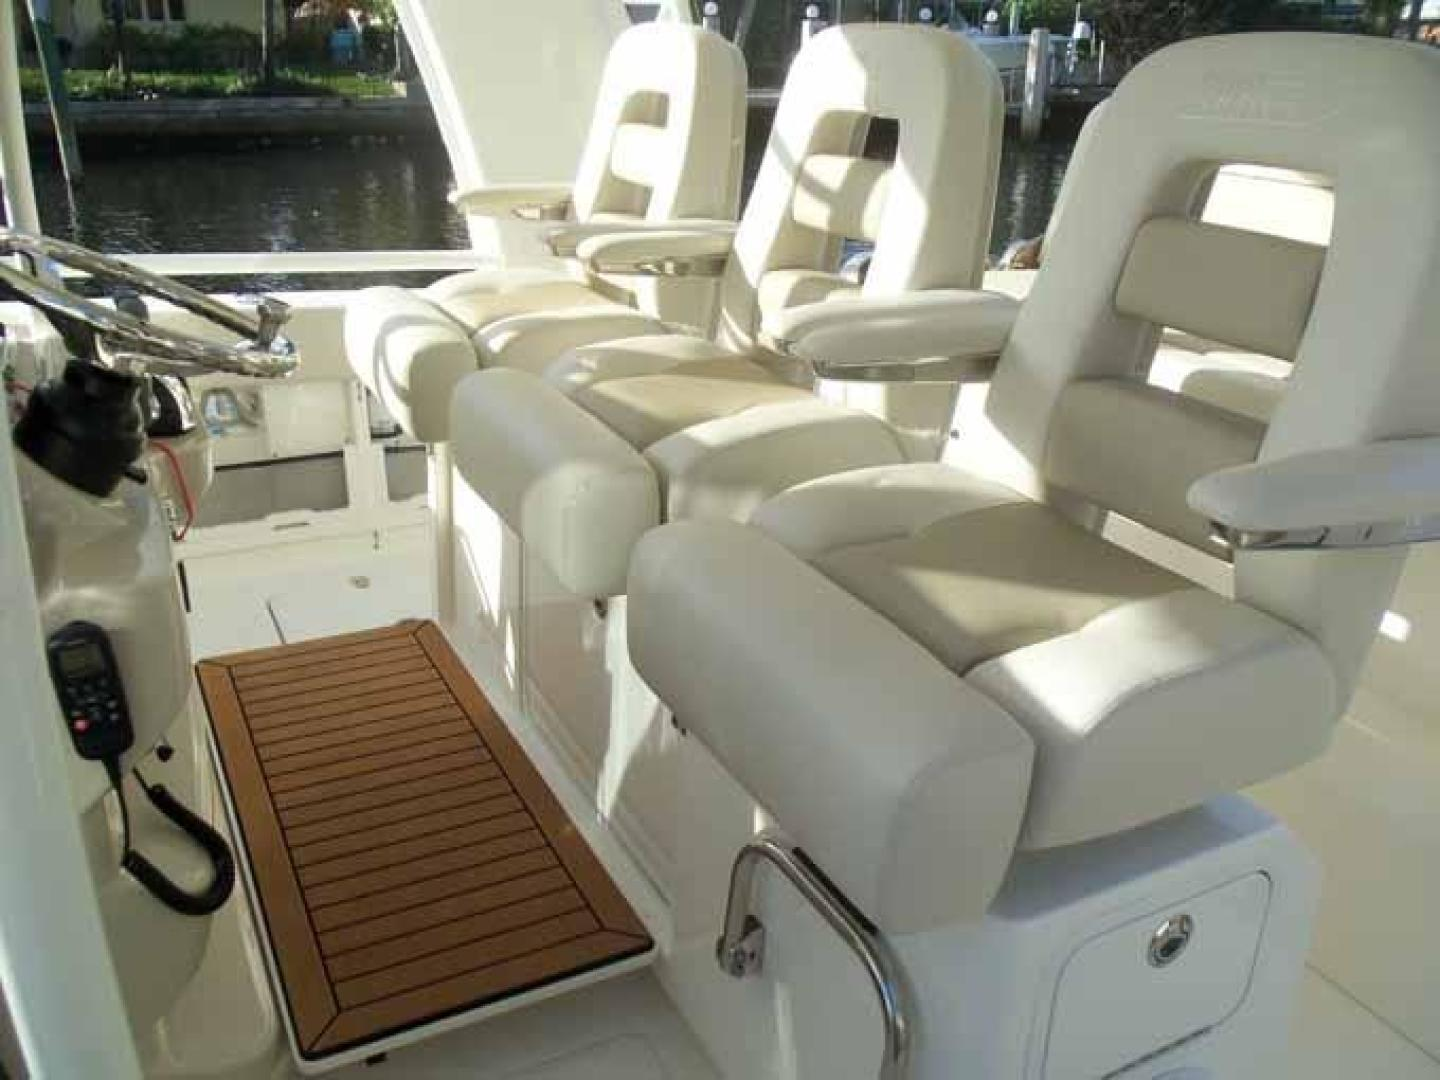 Boston Whaler-Outrage 42 2016-DEALERS CHOICE Ft. Lauderdale-Florida-United States-HELM PLATFORM FOLDED DOWN-1058275 | Thumbnail